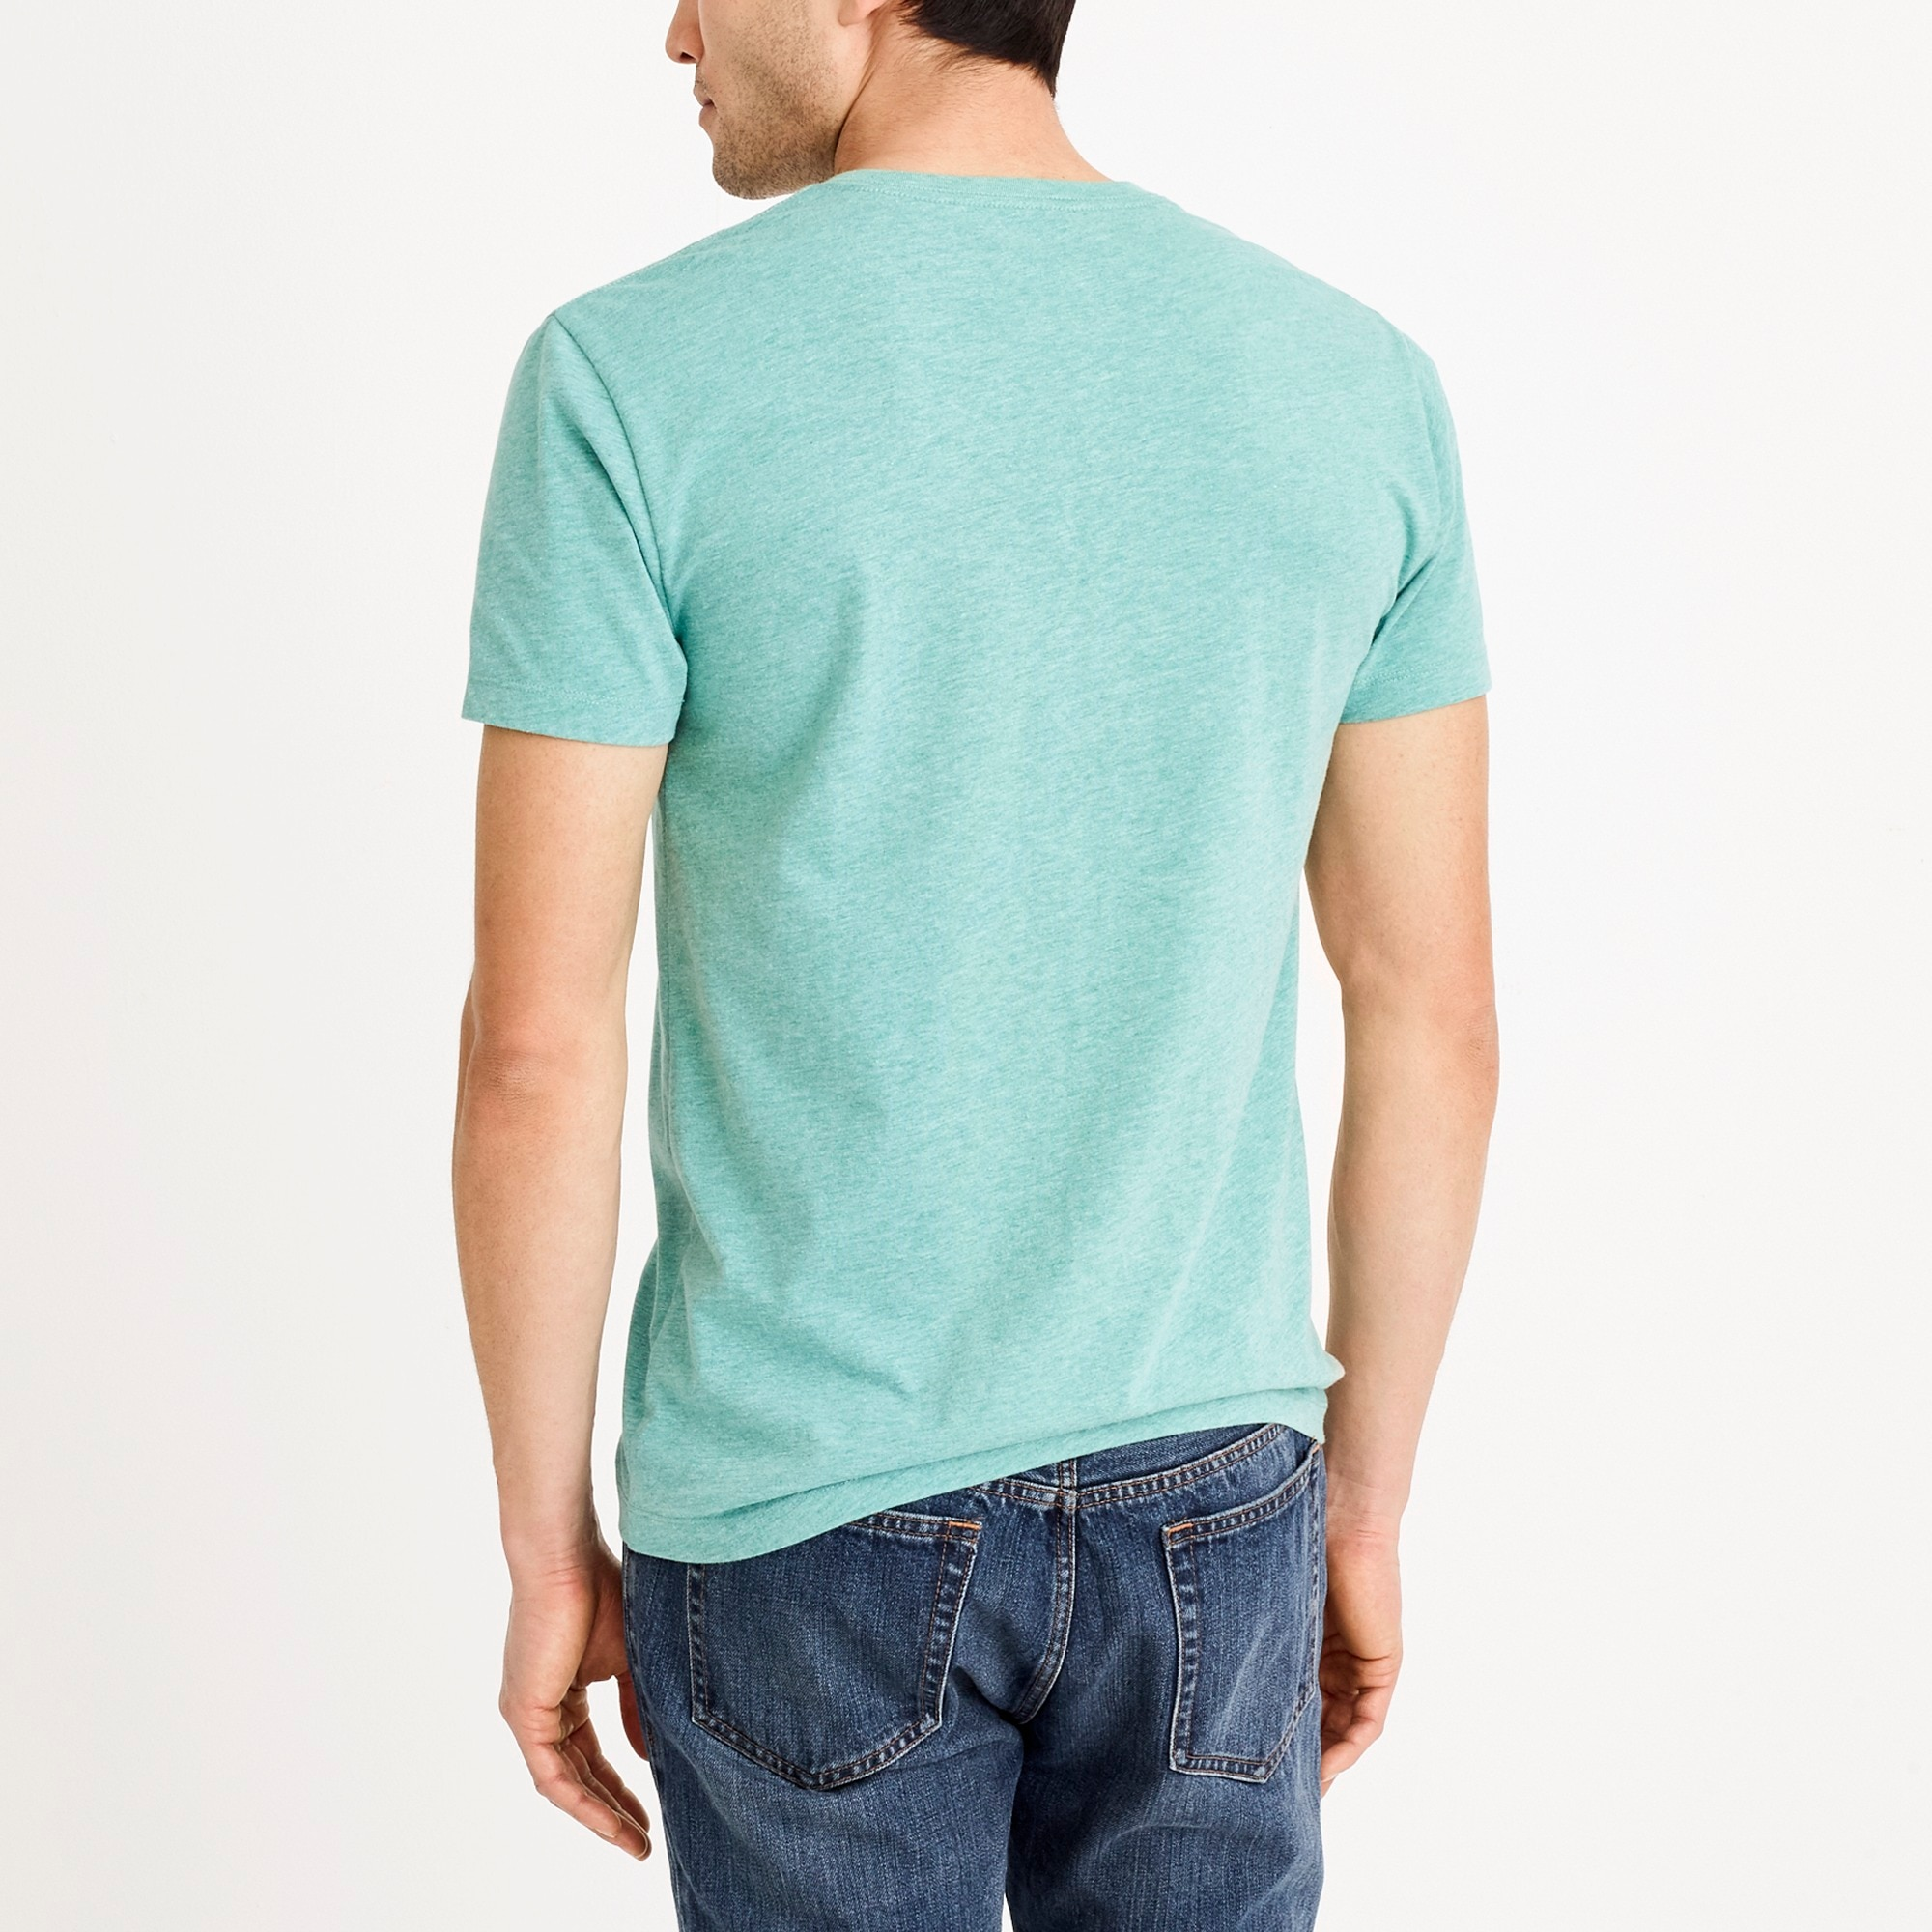 Image 2 for J.Crew Mercantile slim heathered Broken-in V-neck T-shirt